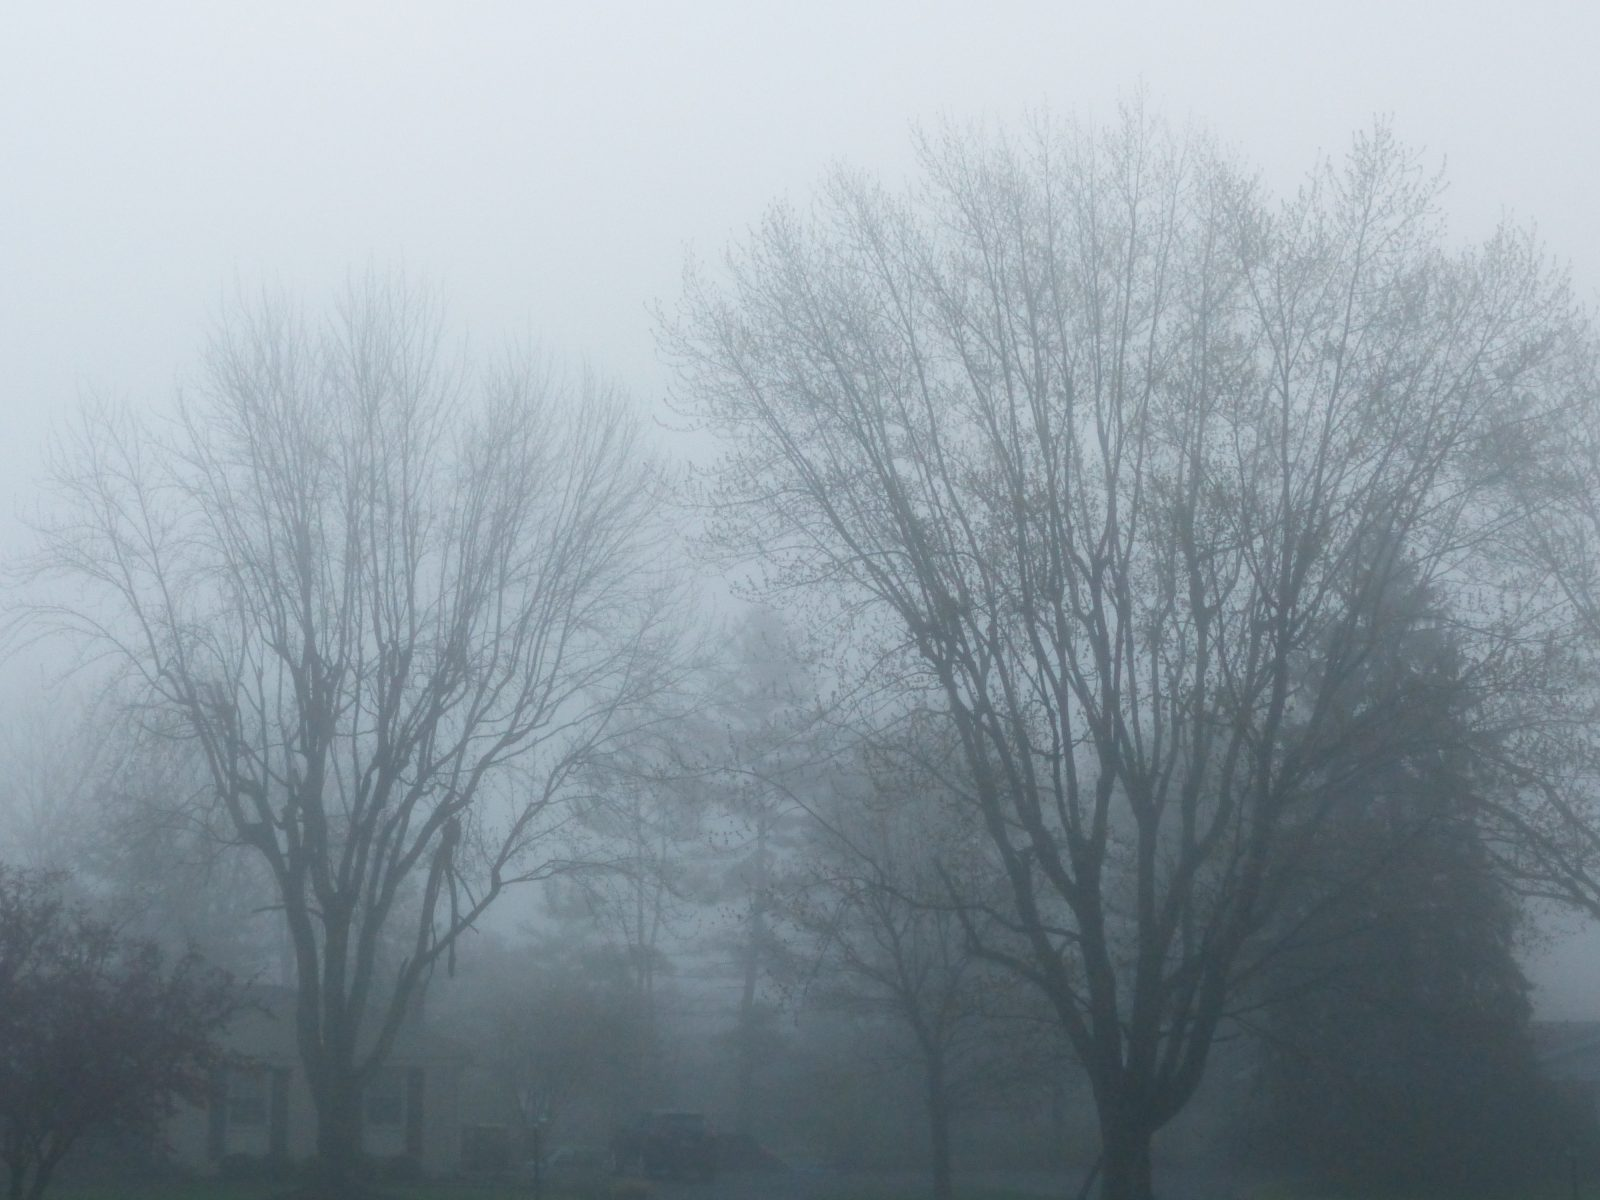 Fog-shrouded trees